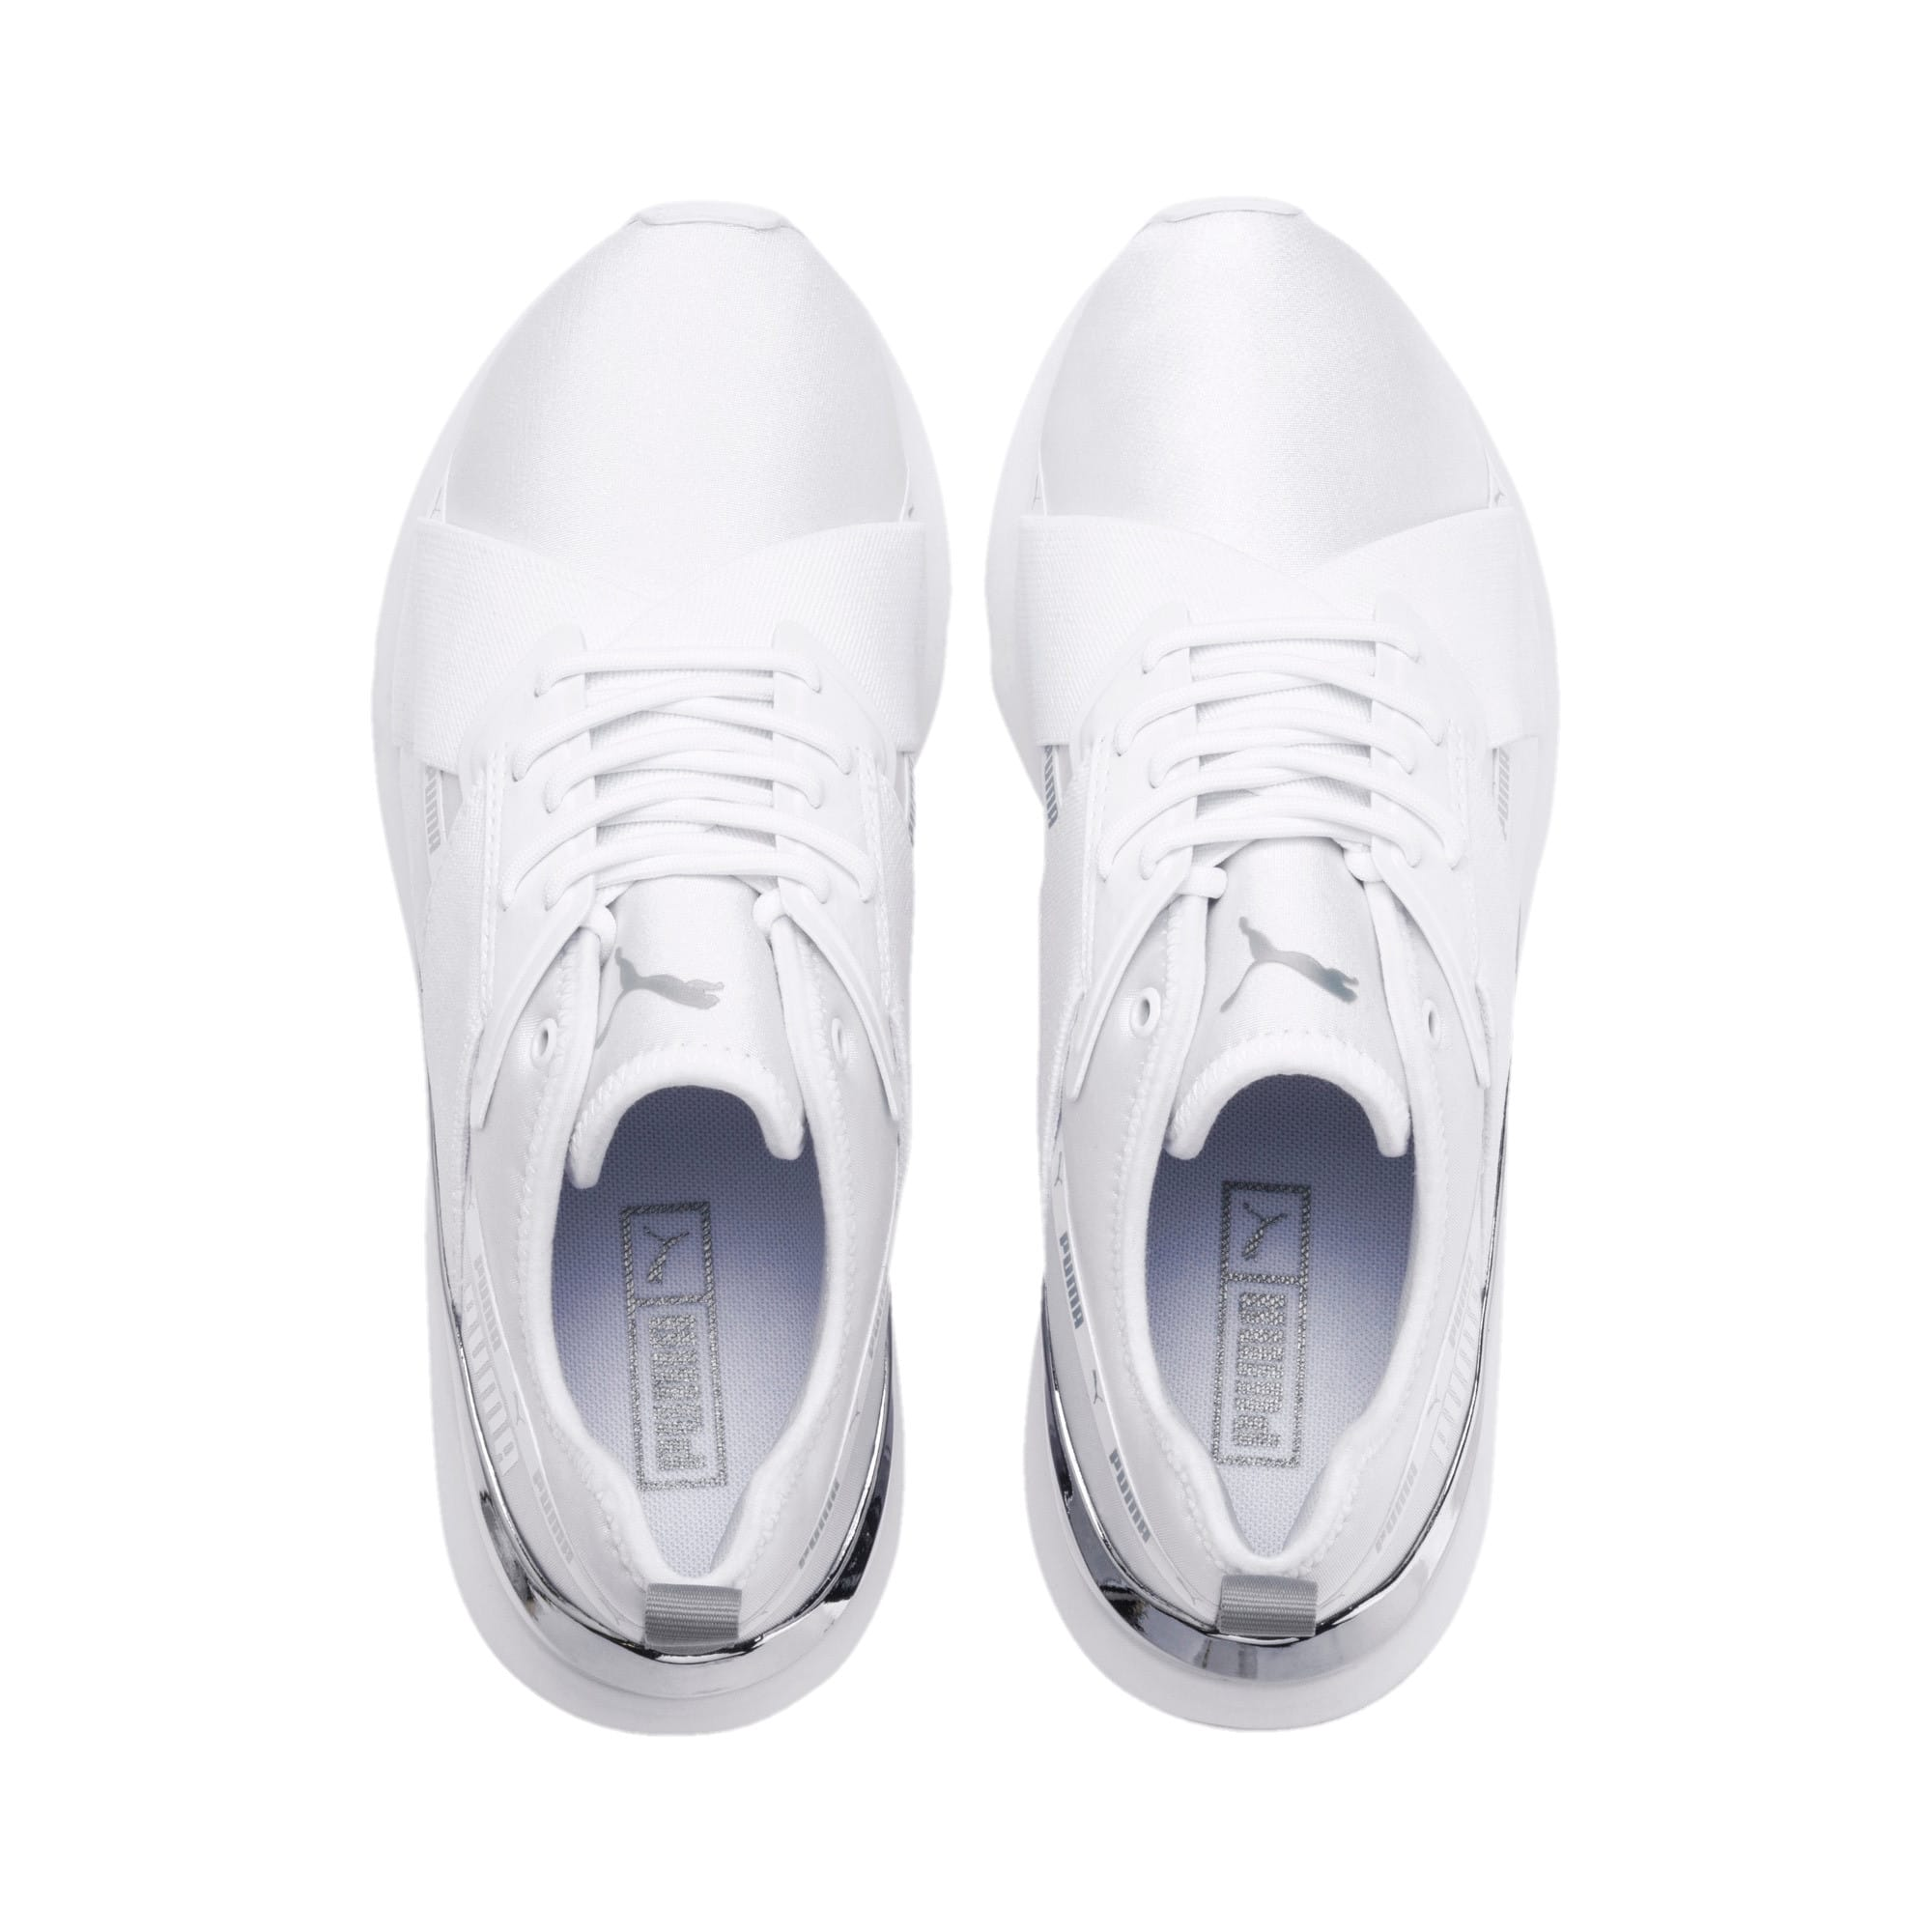 Anteprima 7 di Muse X-2 Metallic Women's Trainers, Puma White, medio